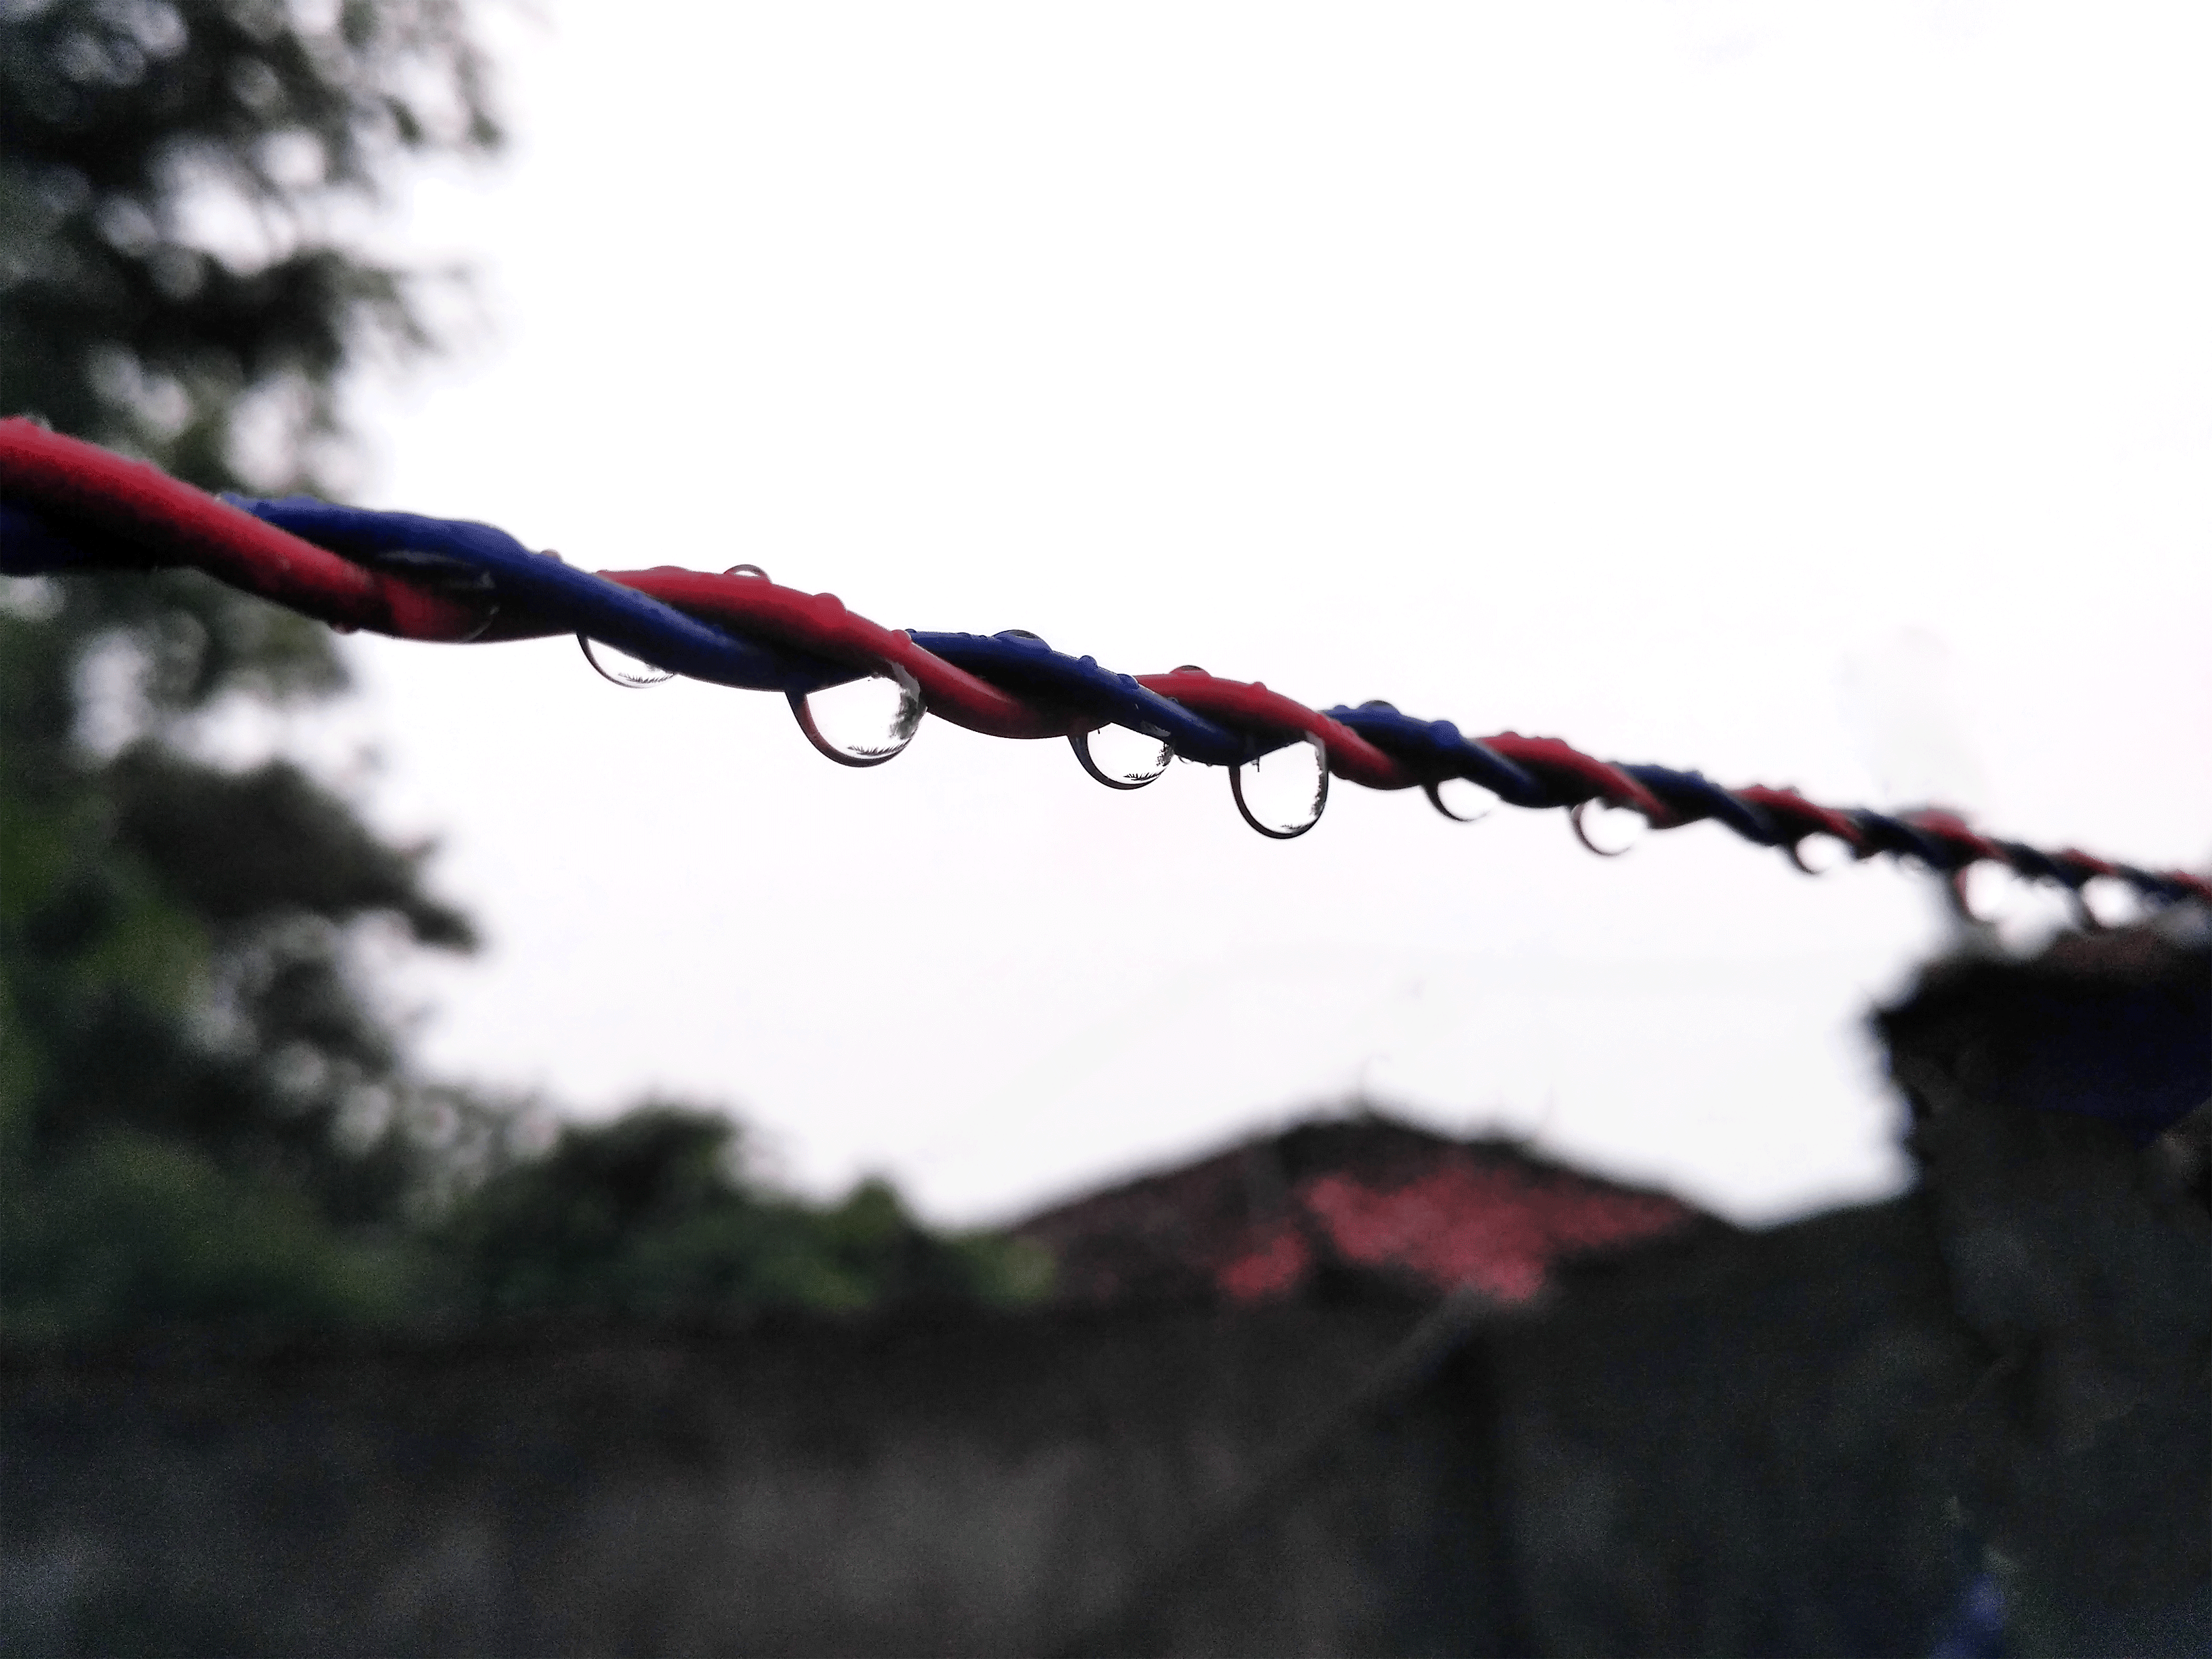 Drops on wire